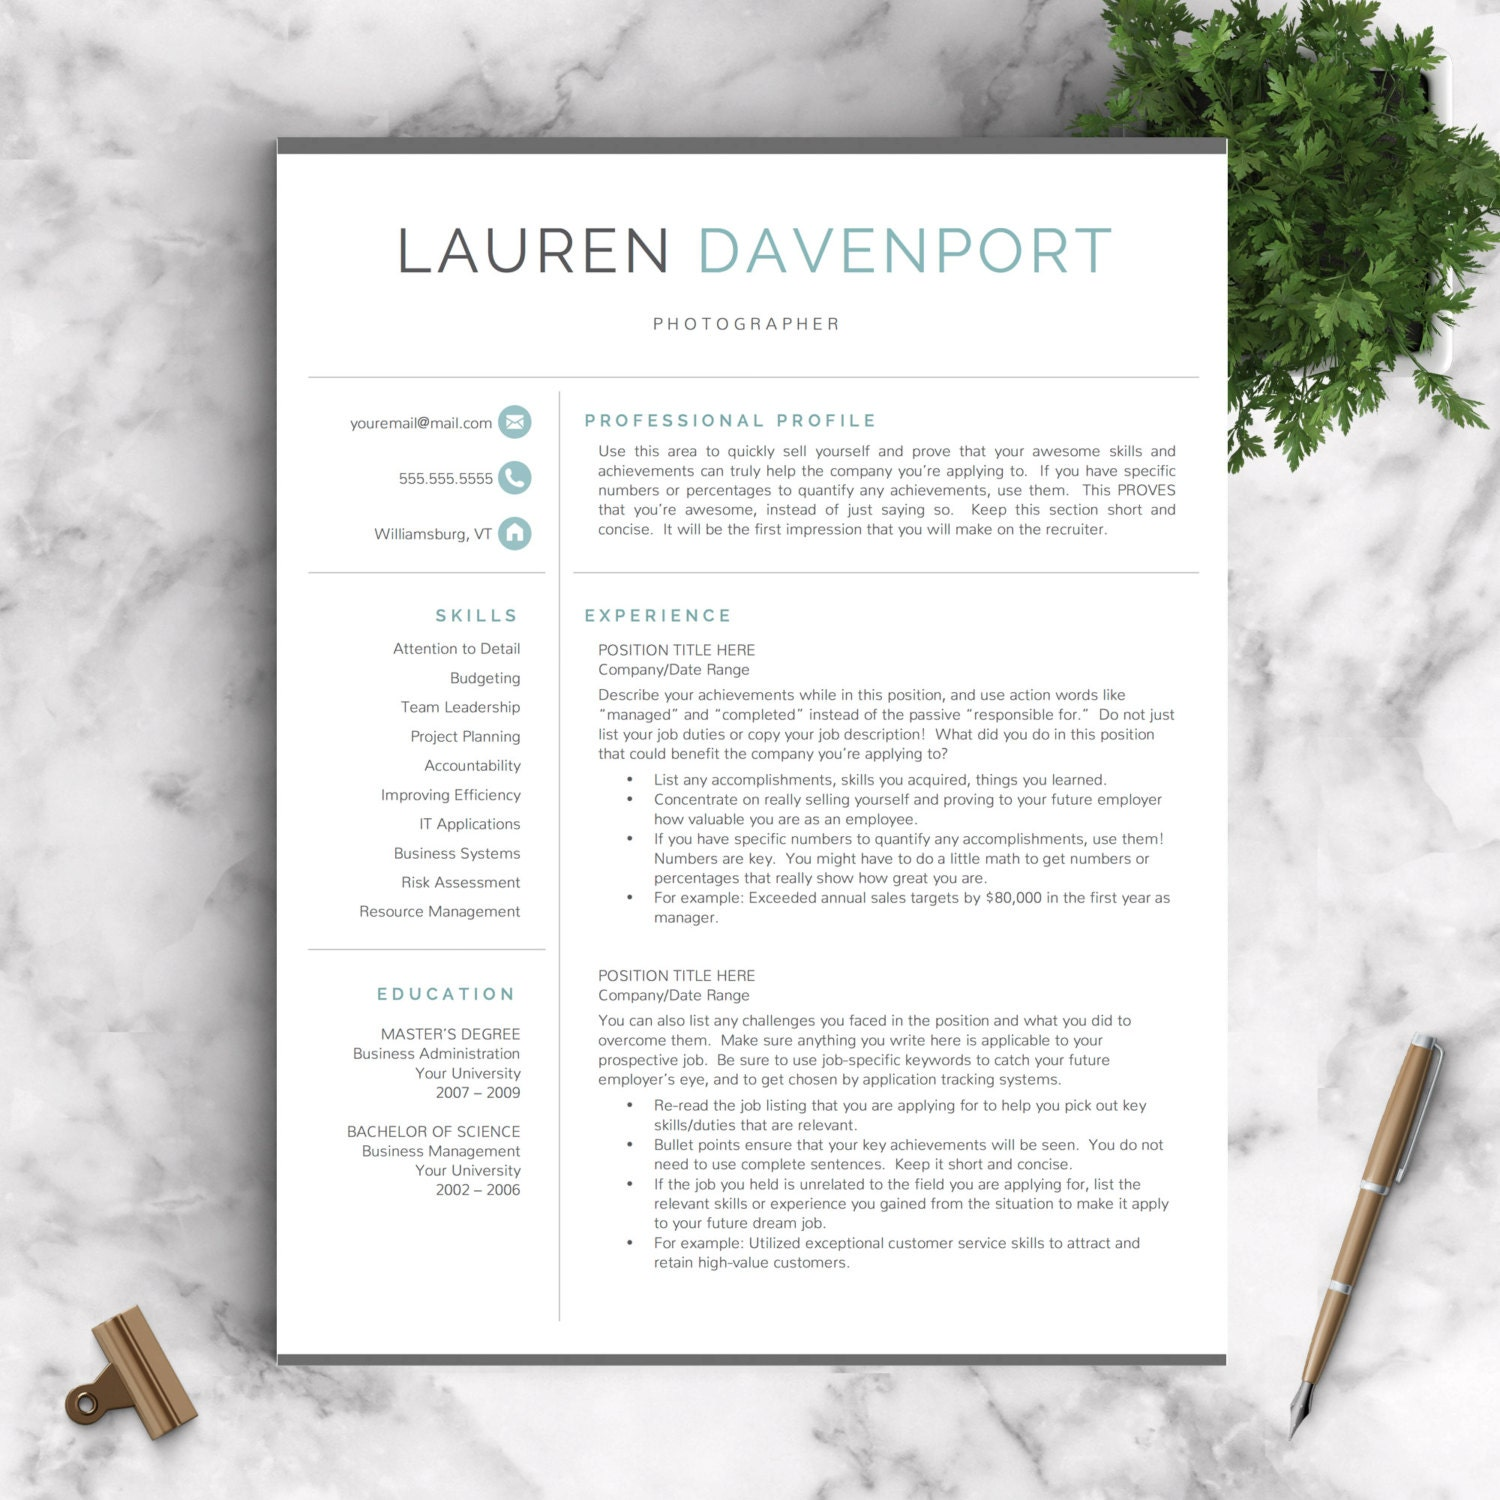 modern resume template modern resume template professional resume by 23680 | il fullxfull.944144424 1obm